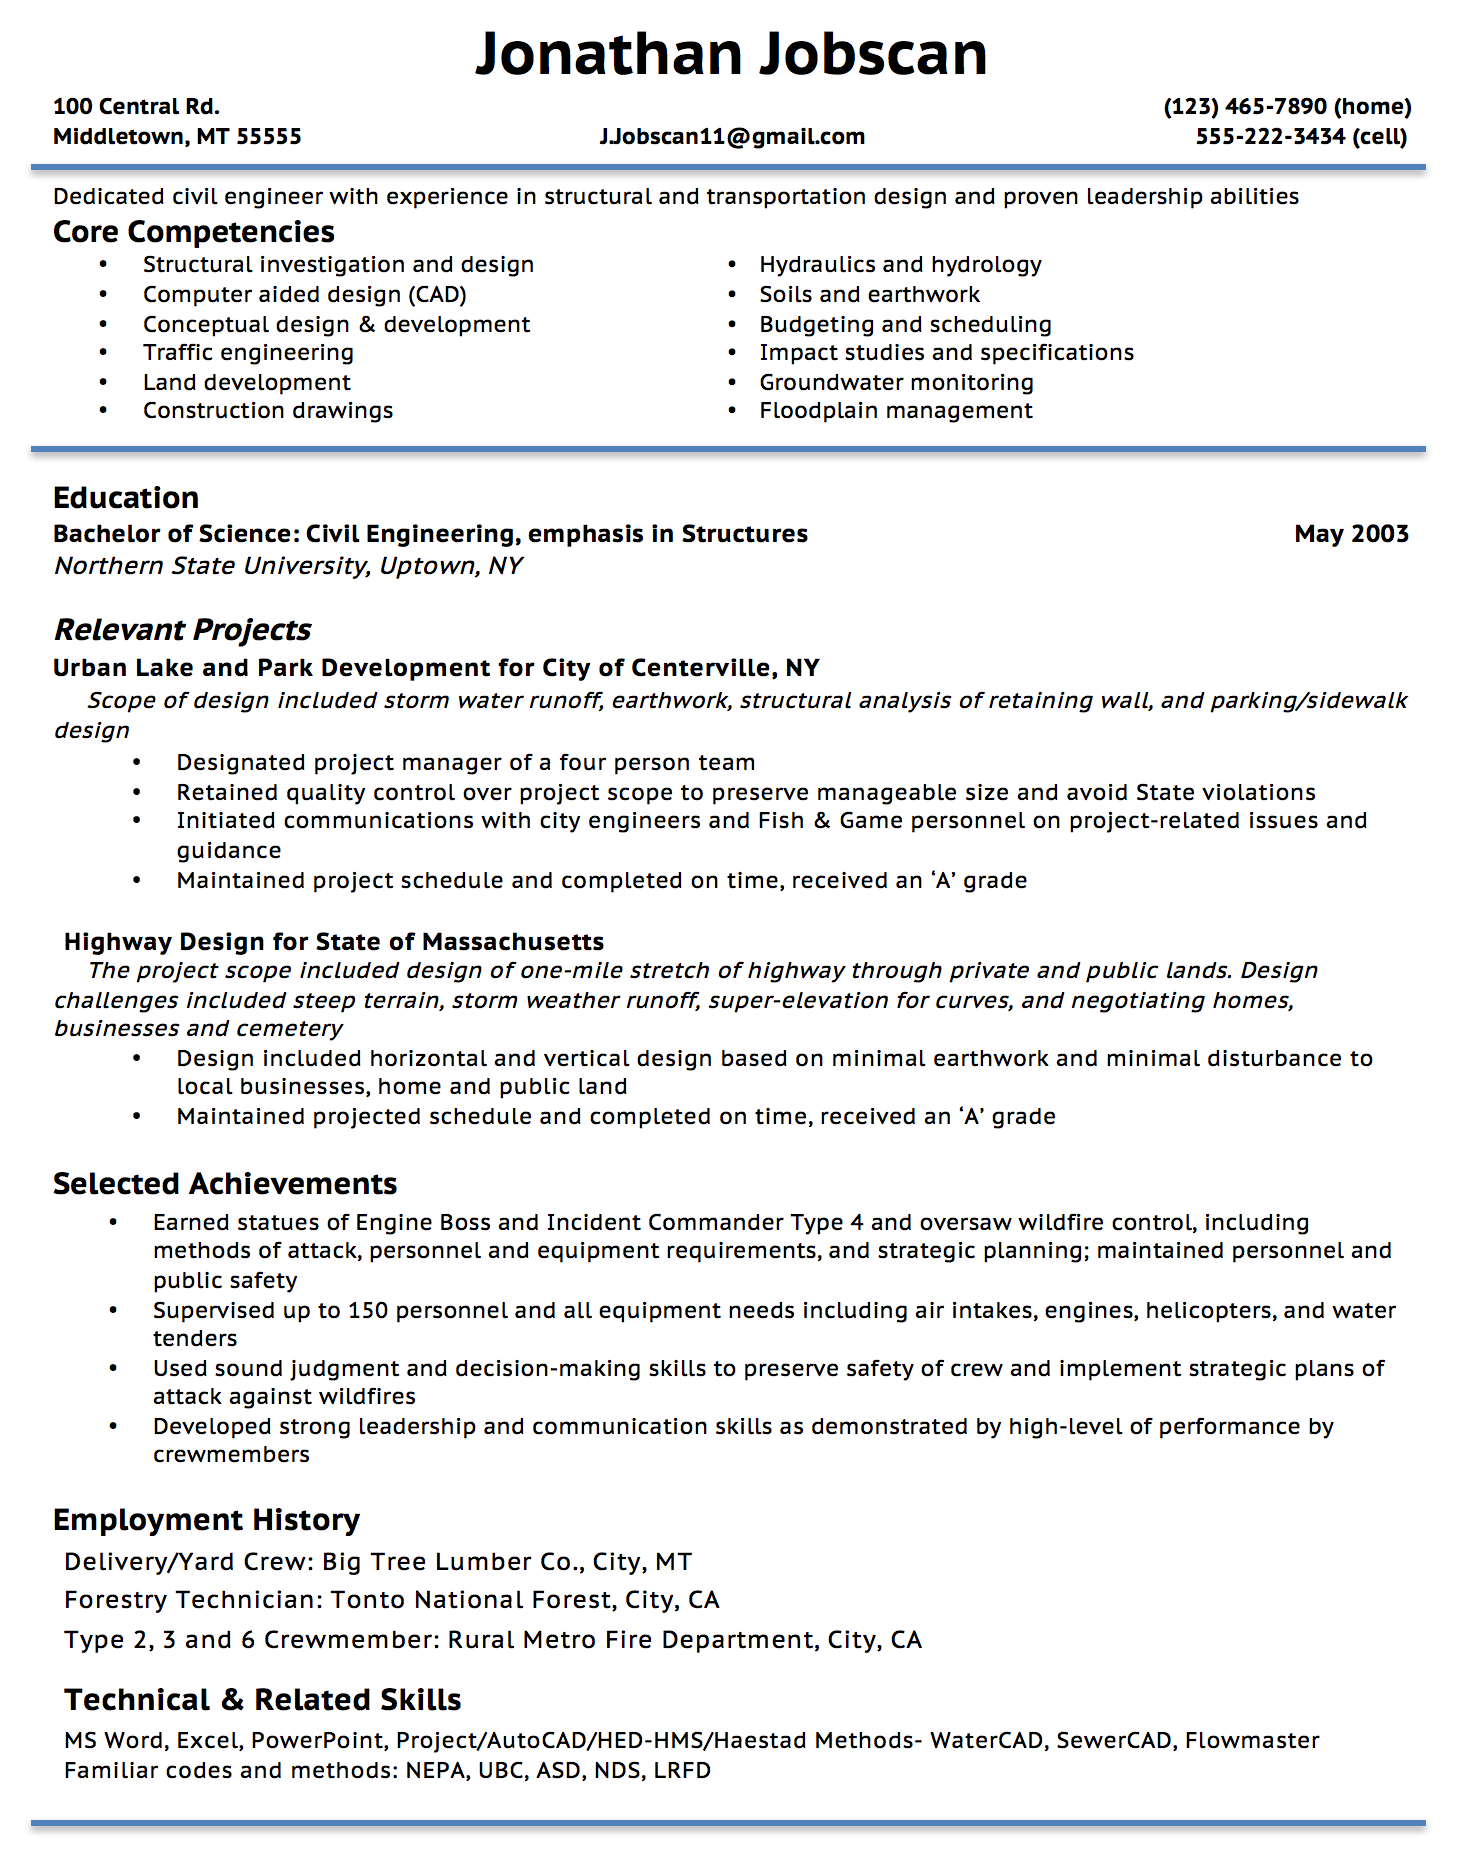 Opposenewapstandardsus  Unusual Resume Writing Guide  Jobscan With Outstanding Example Of A Functional Resume Format With Endearing Making A Great Resume Also Front Office Manager Resume In Addition Resume Retail Skills And Resume Livecareer Login As Well As Infographics Resume Additionally High School Degree On Resume From Jobscanco With Opposenewapstandardsus  Outstanding Resume Writing Guide  Jobscan With Endearing Example Of A Functional Resume Format And Unusual Making A Great Resume Also Front Office Manager Resume In Addition Resume Retail Skills From Jobscanco